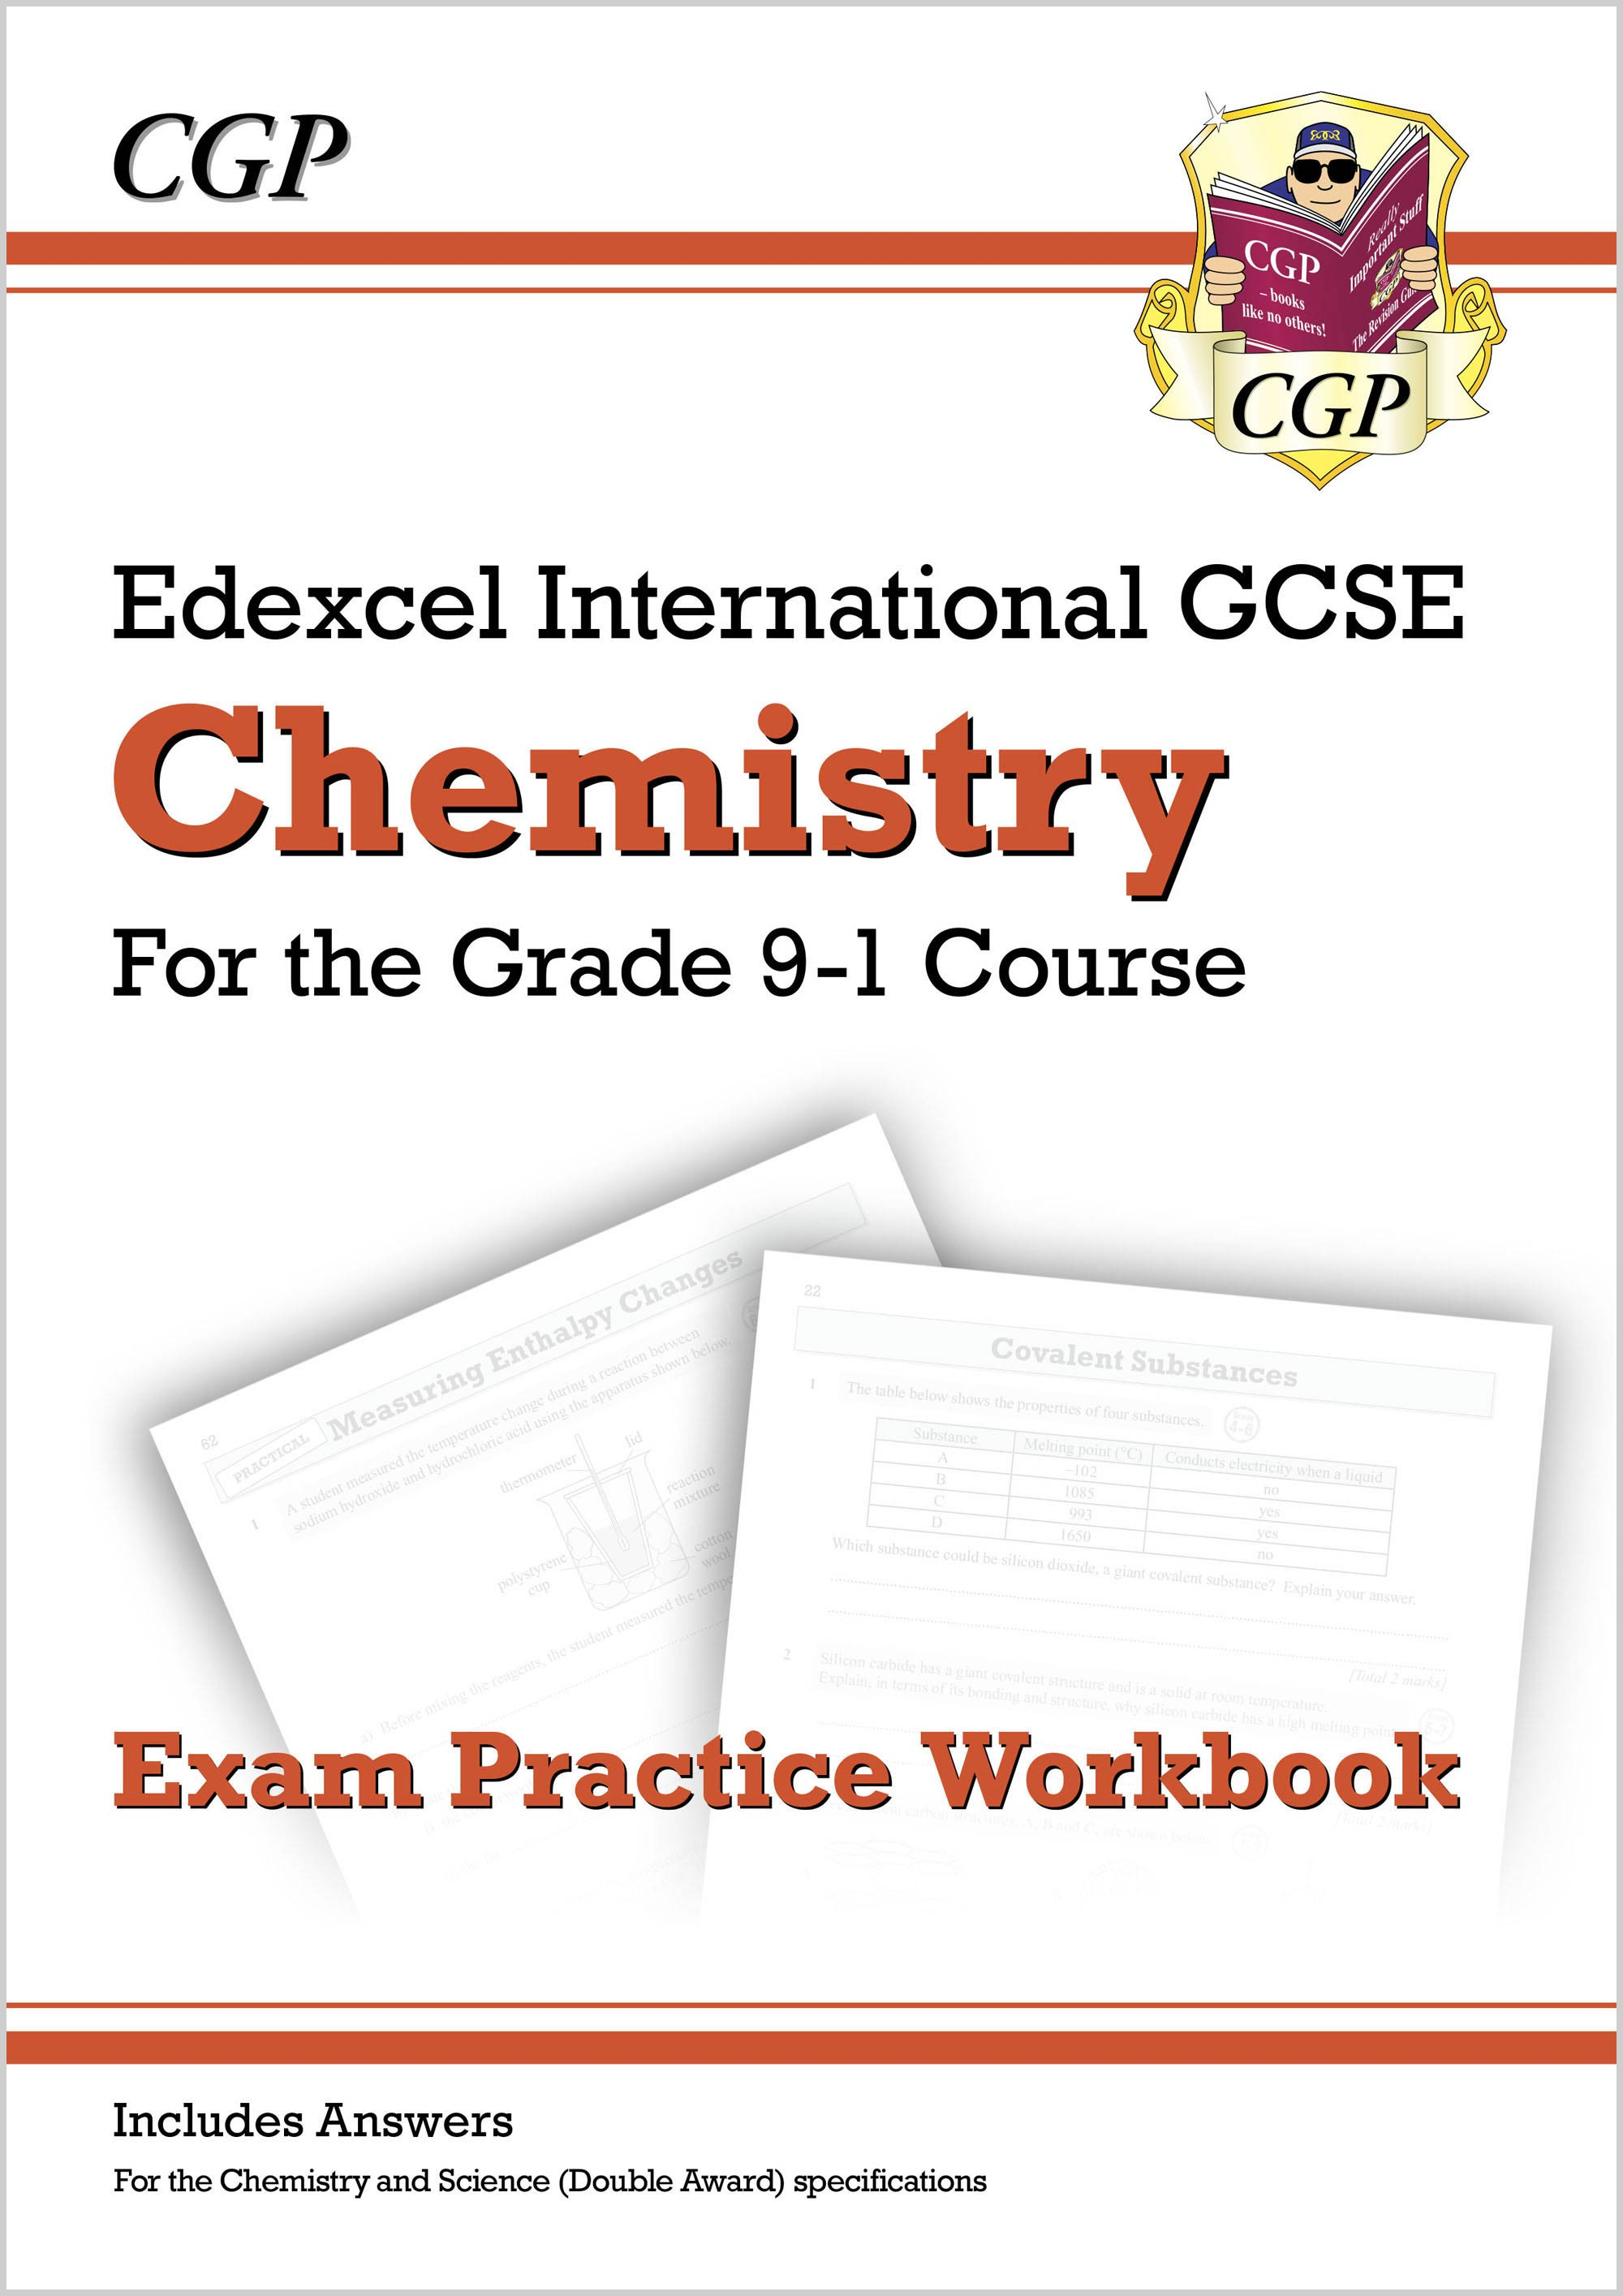 CEQI42D - New Grade 9-1 Edexcel International GCSE Chemistry: Exam Practice Workbook (includes Answe